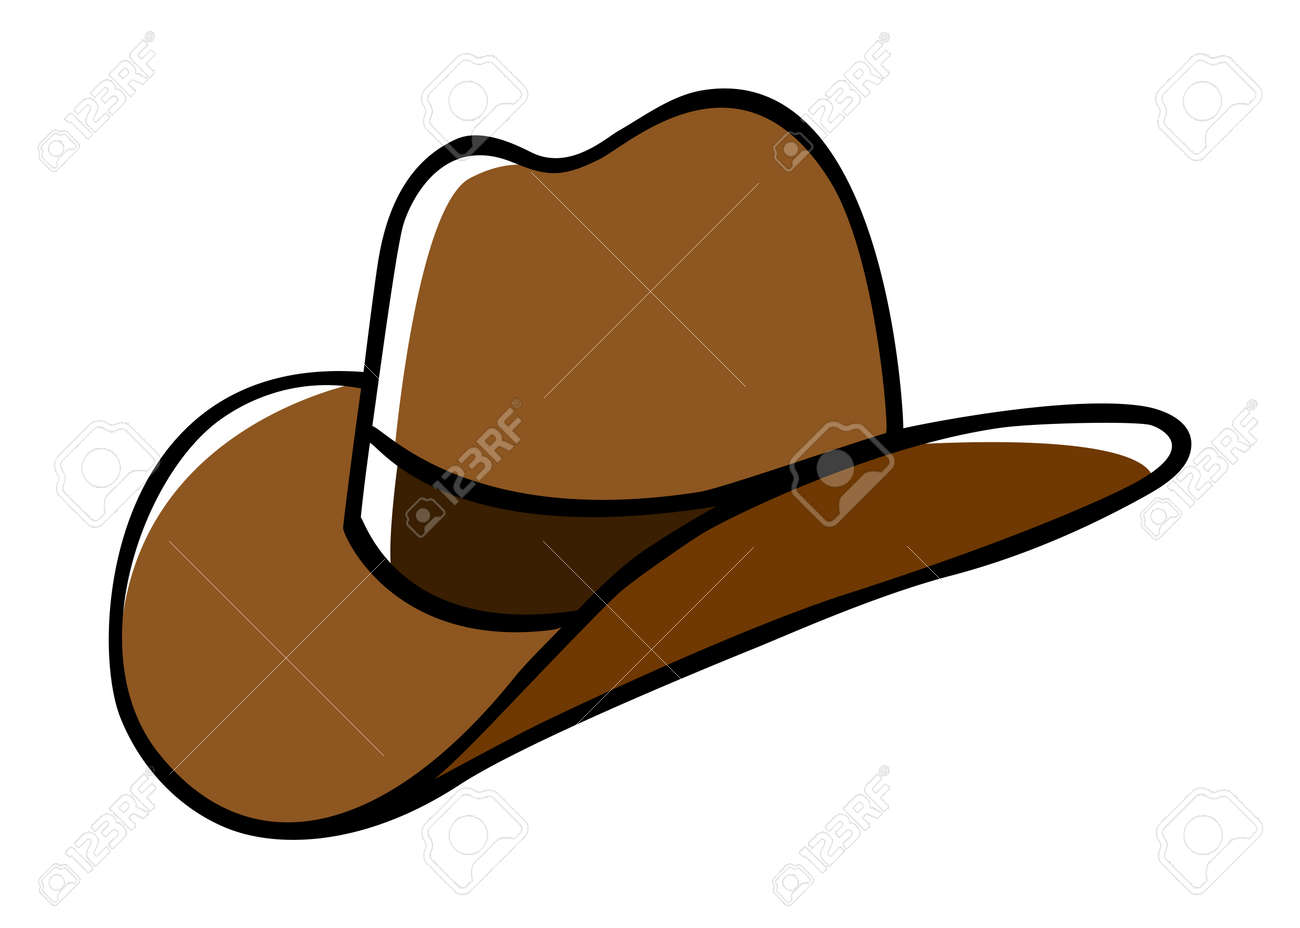 hight resolution of doodle illustration of a cowboy hat stock vector 36752908